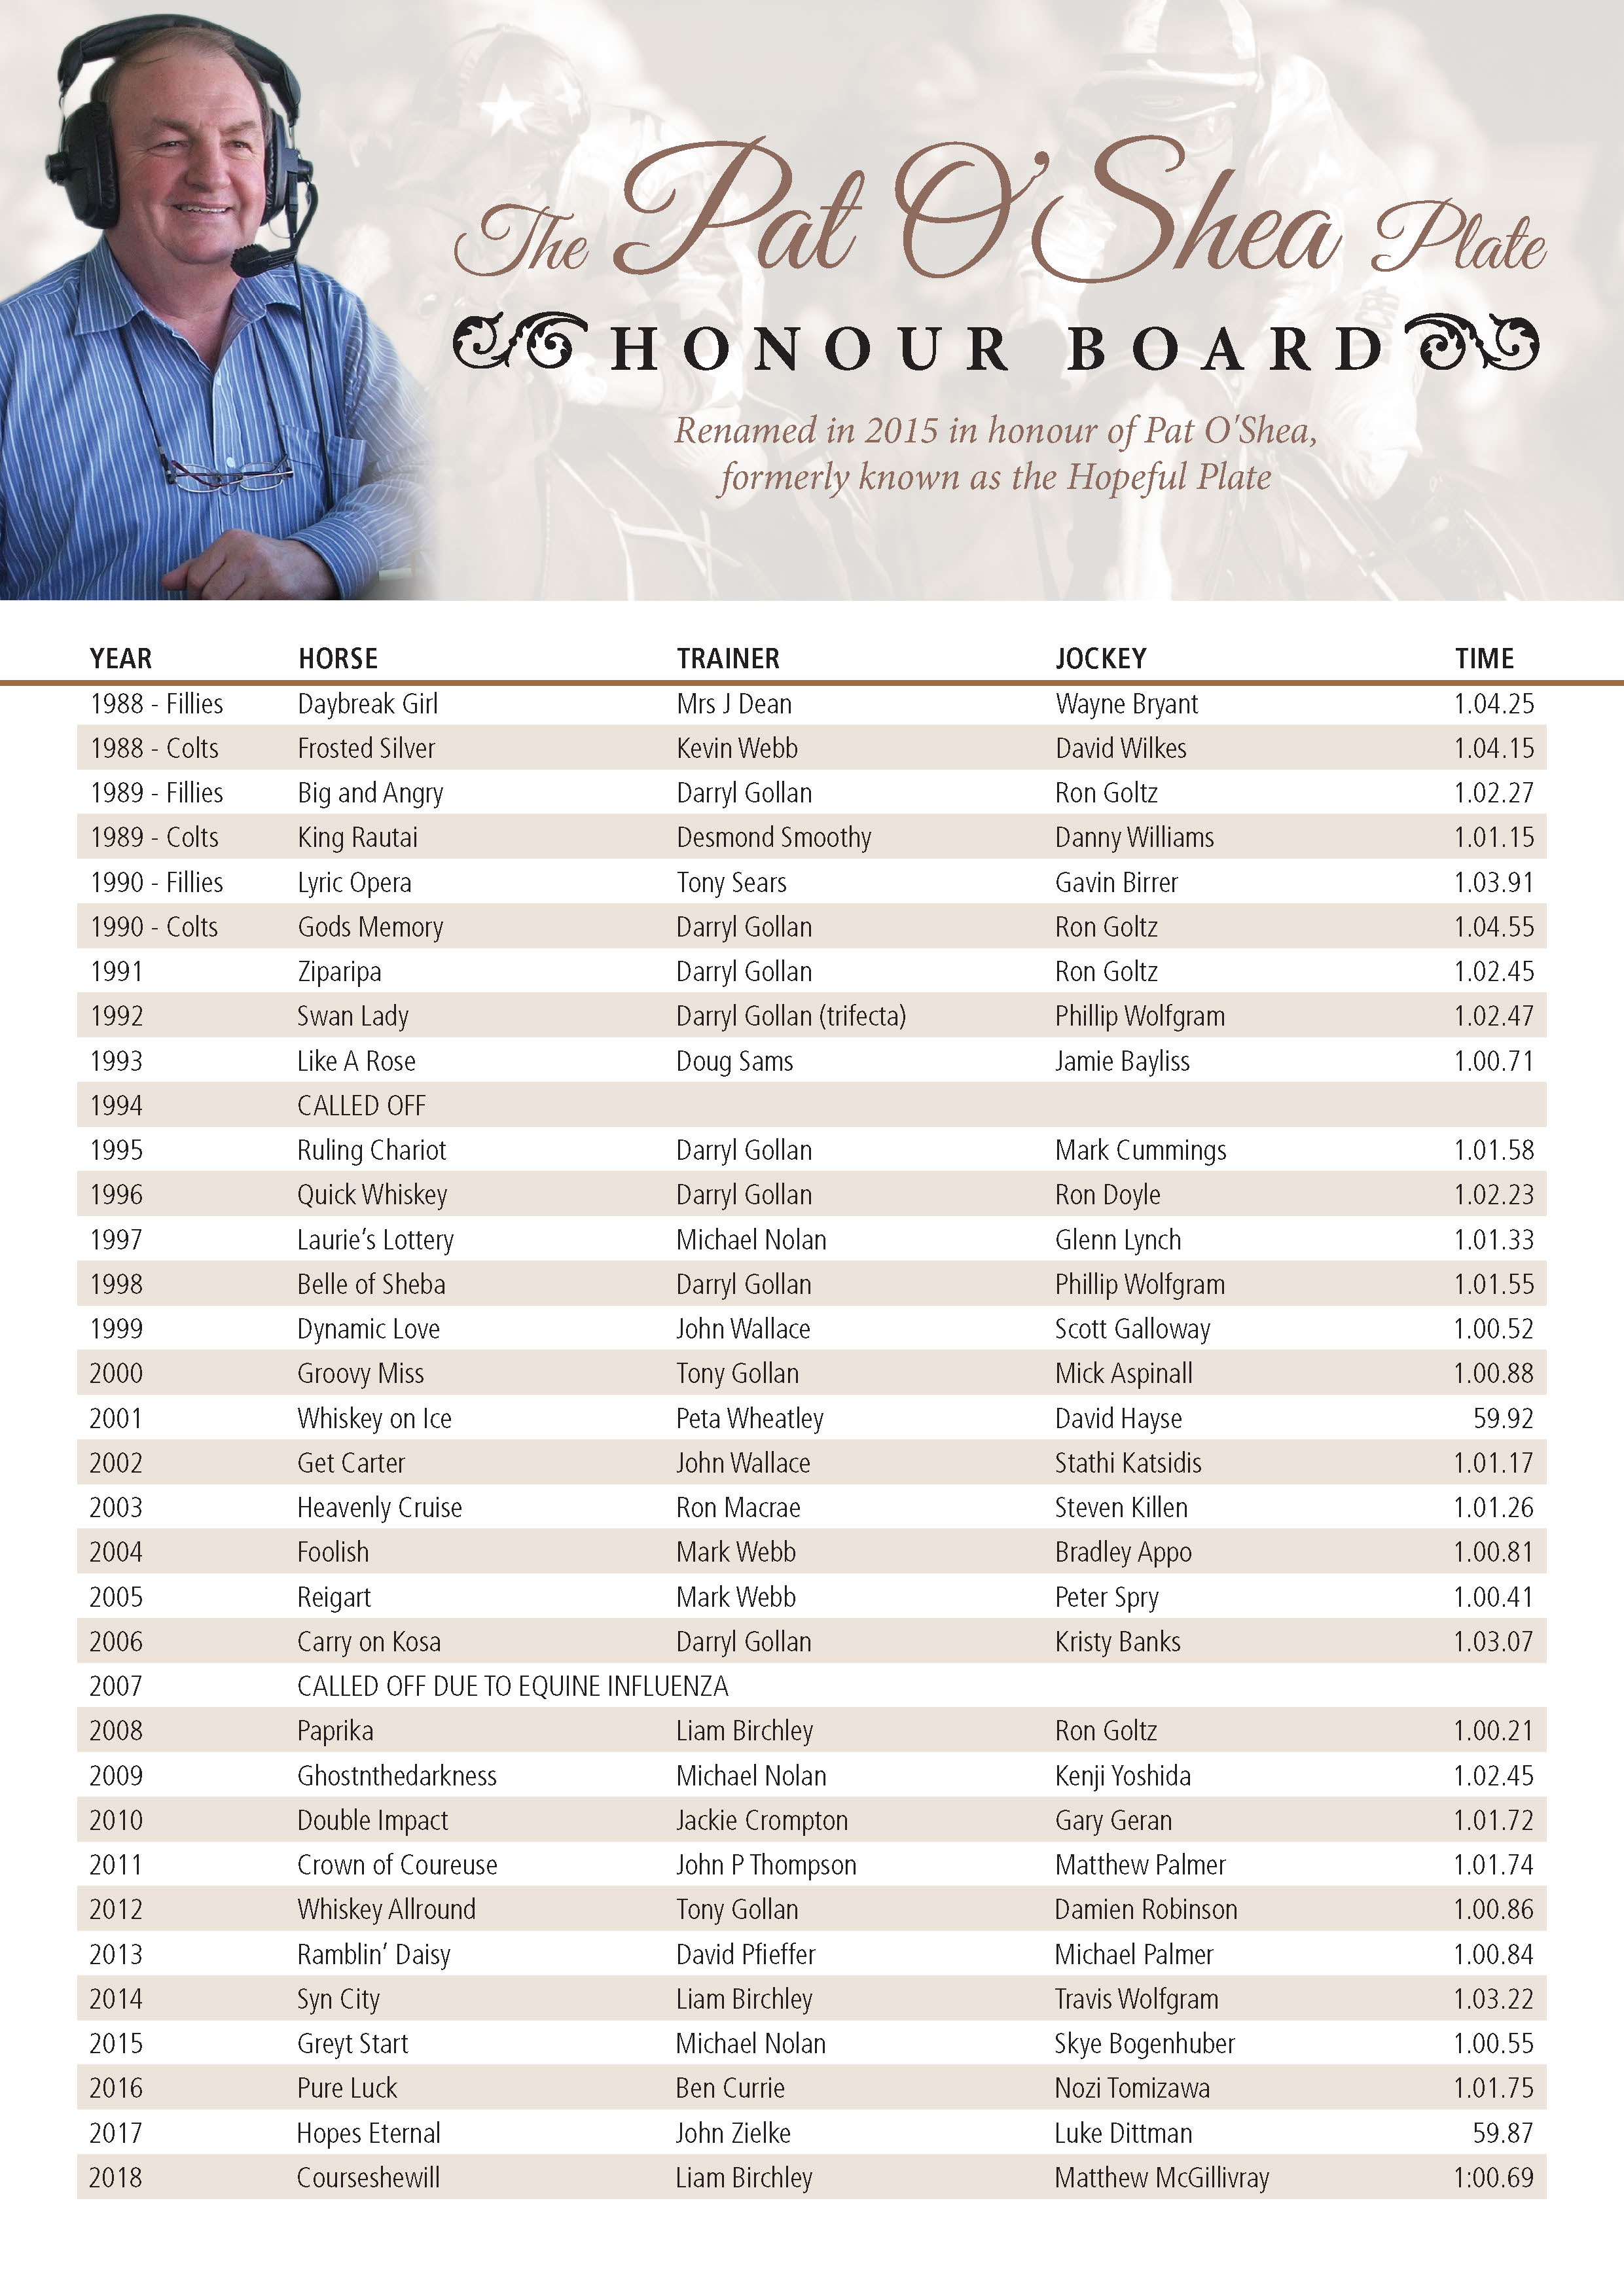 TTC096 Pat O'Shea Honour Board A4 Oct 2018 #1